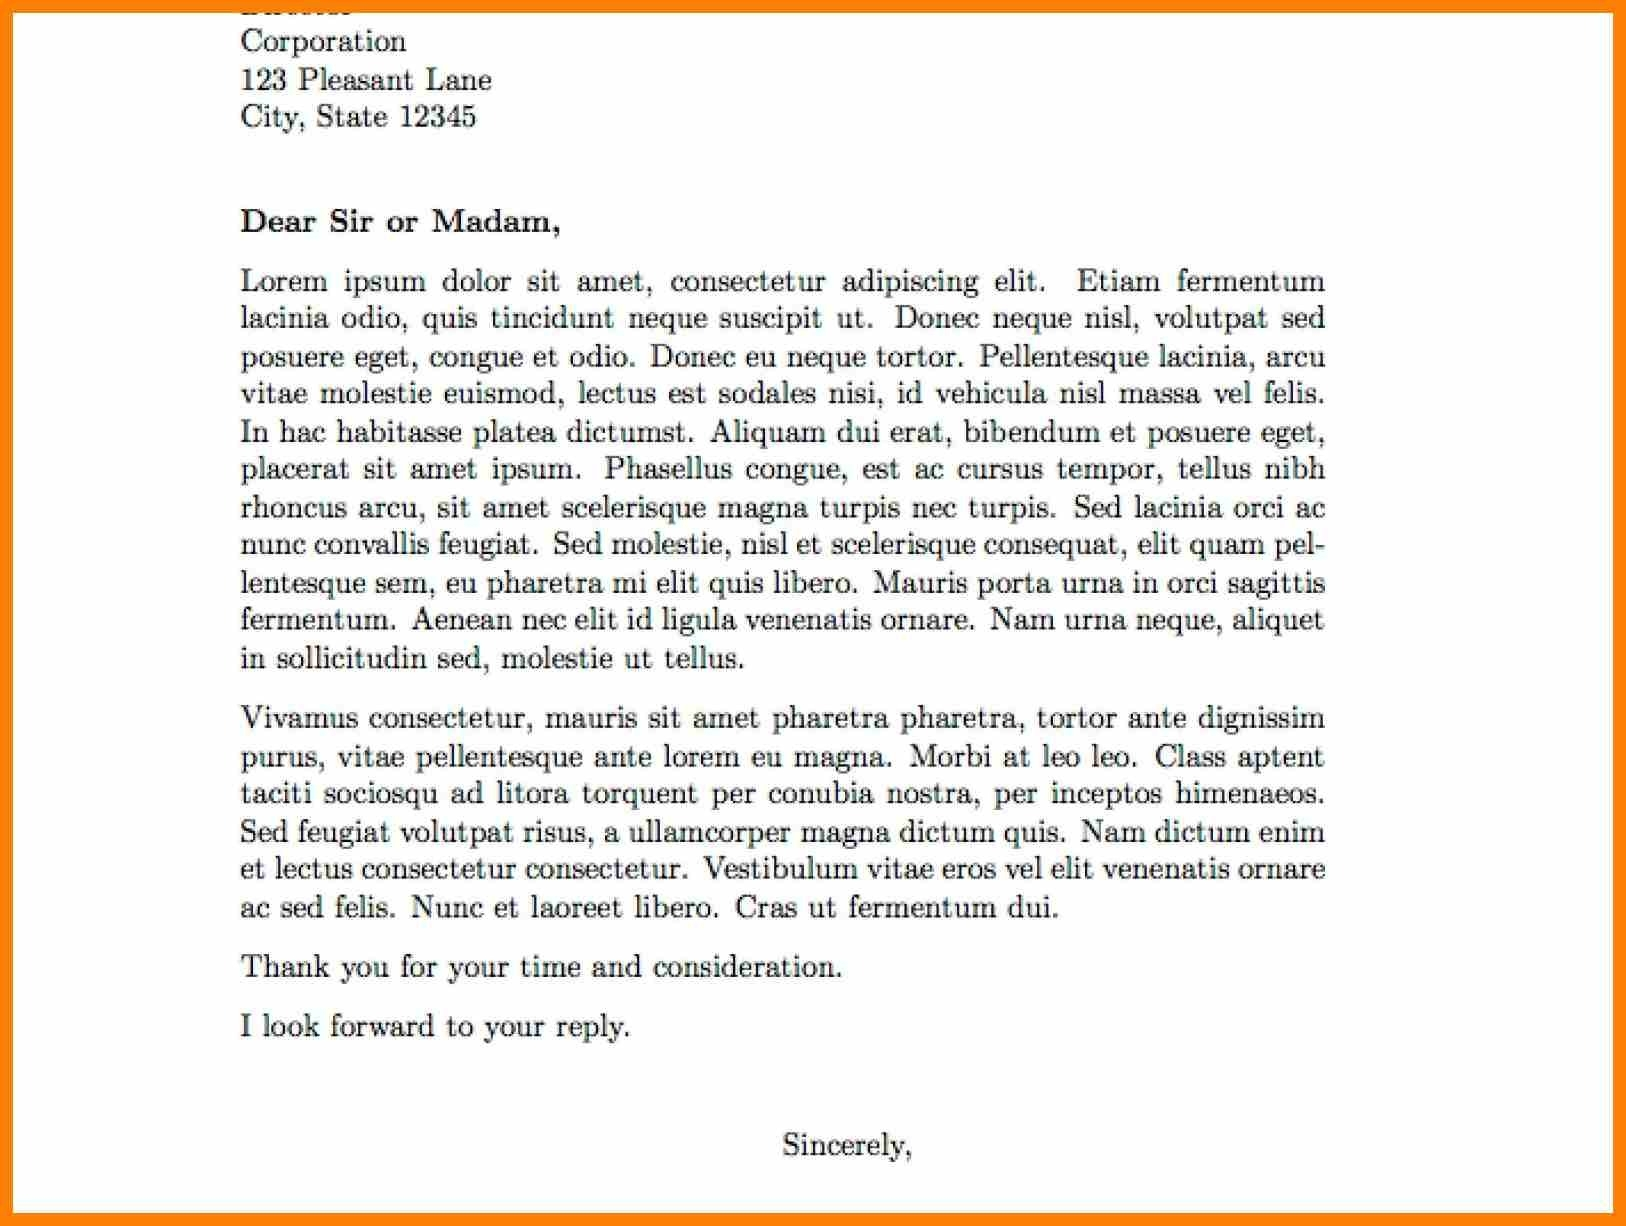 Mission Trip Donation Letter Template - How to Write A Missionary Support Letter Choice Image Letter